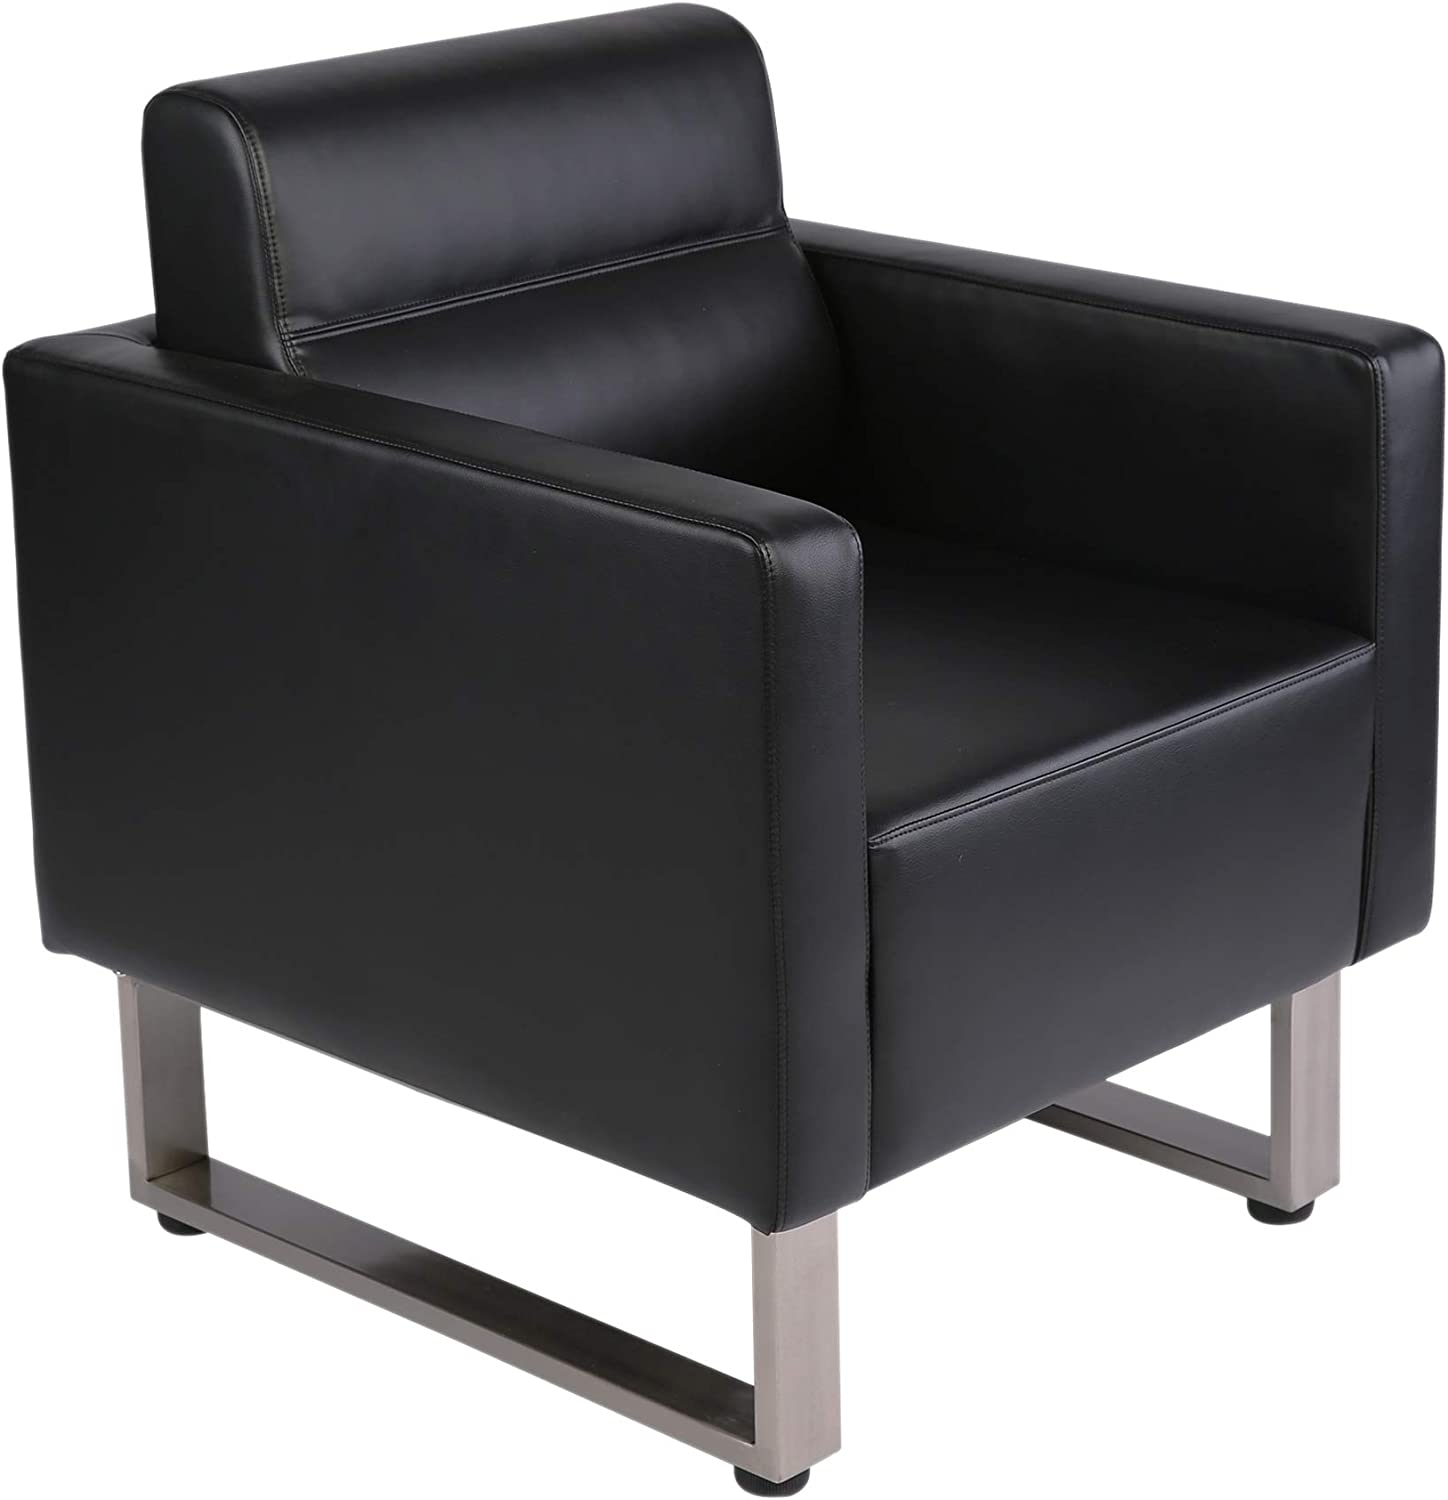 Amazon.com: LuckyerMore Guest Chair Office Reception Chair Leather